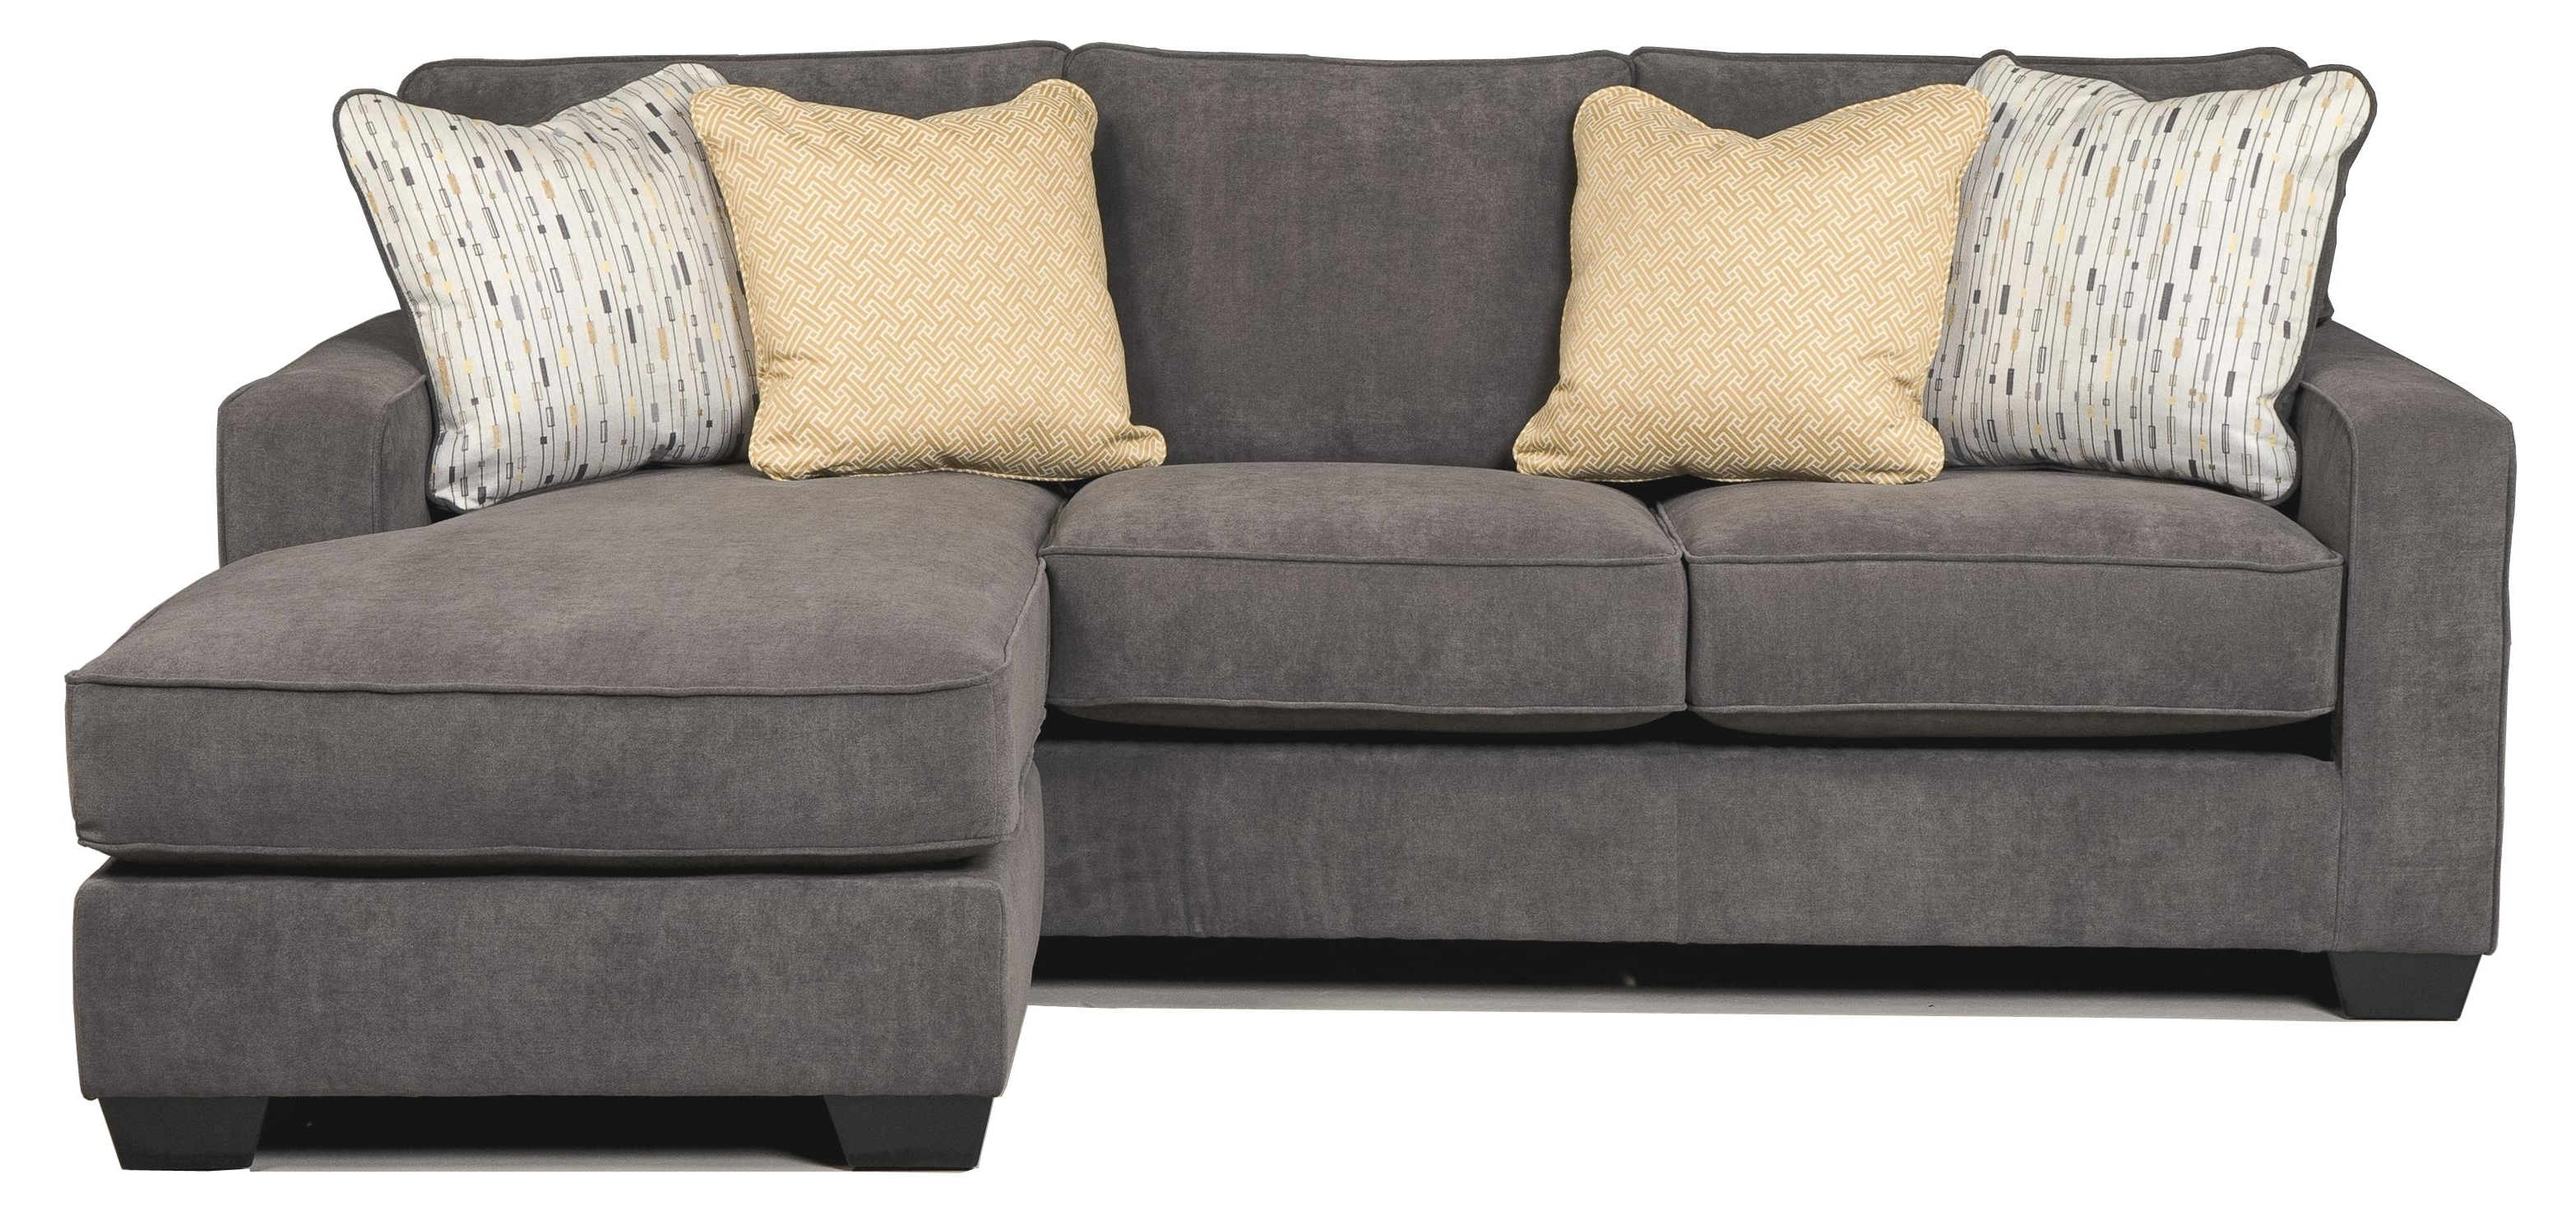 Sofas With Chaise Pertaining To Most Recent Ashley Signature Design Hodan – Marble 7970018 Contemporary Sofa (View 10 of 15)